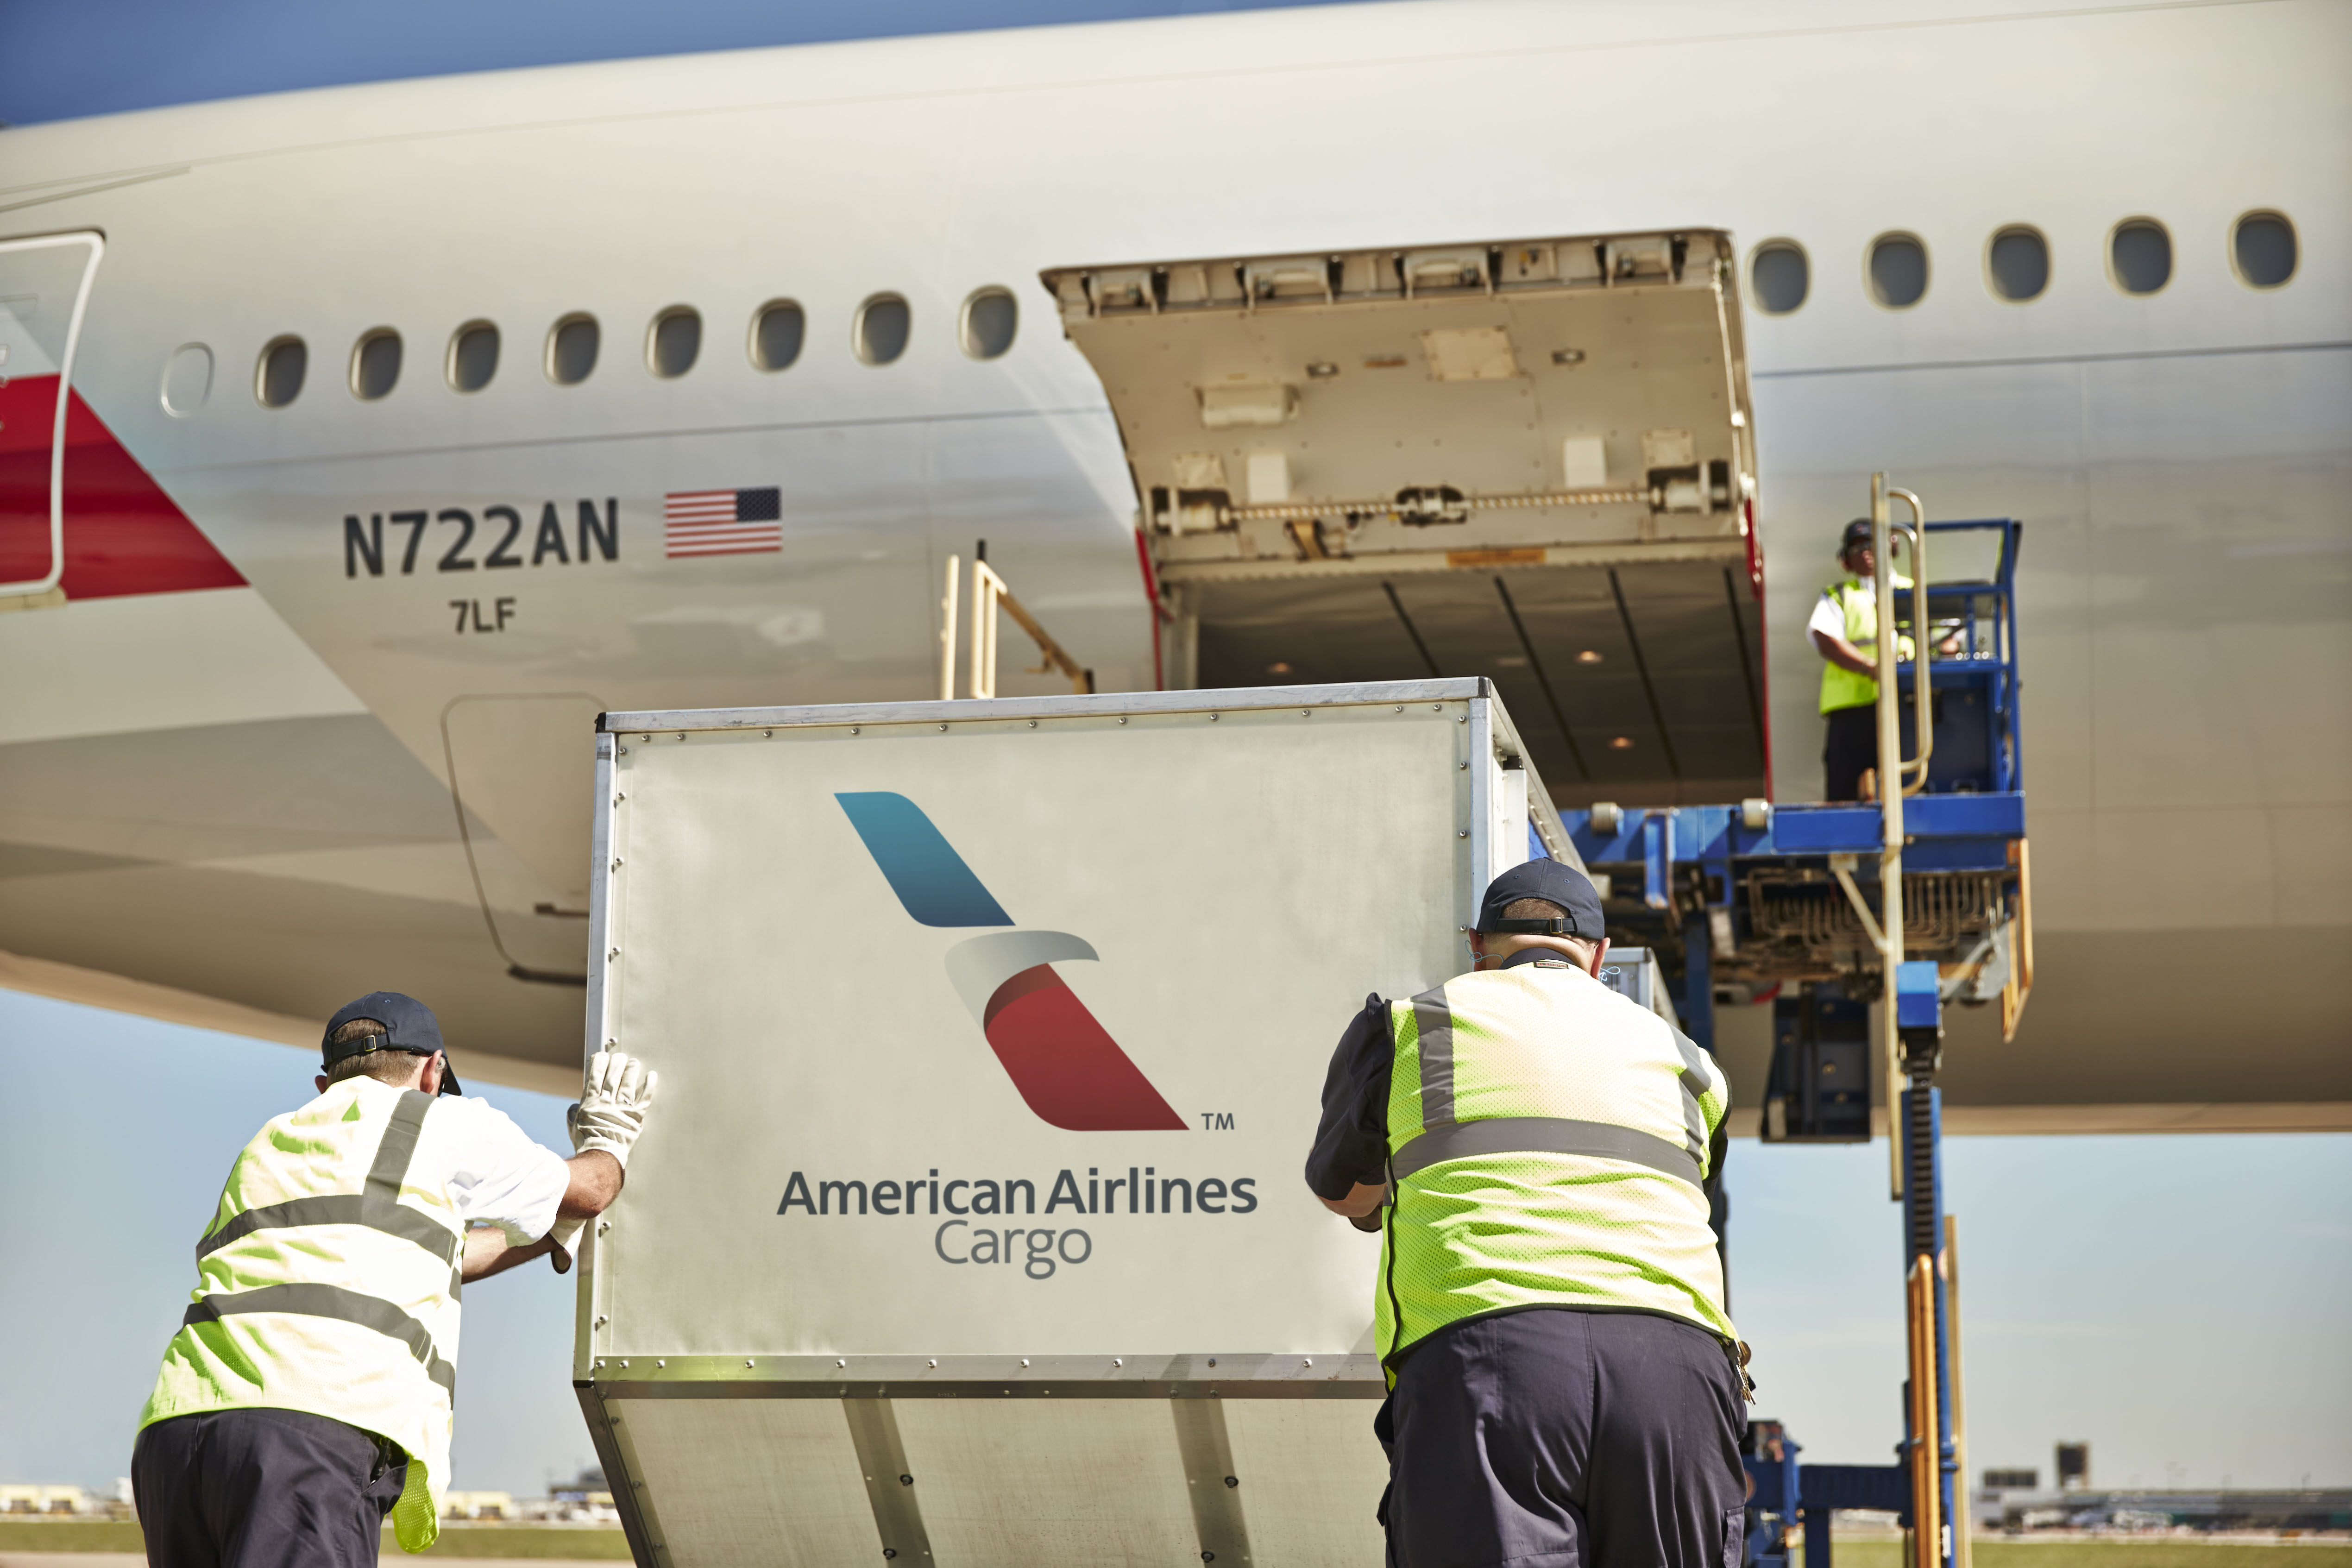 American Airlines Cargo appoints GSAs in Kuwait, Central Eastern Europe